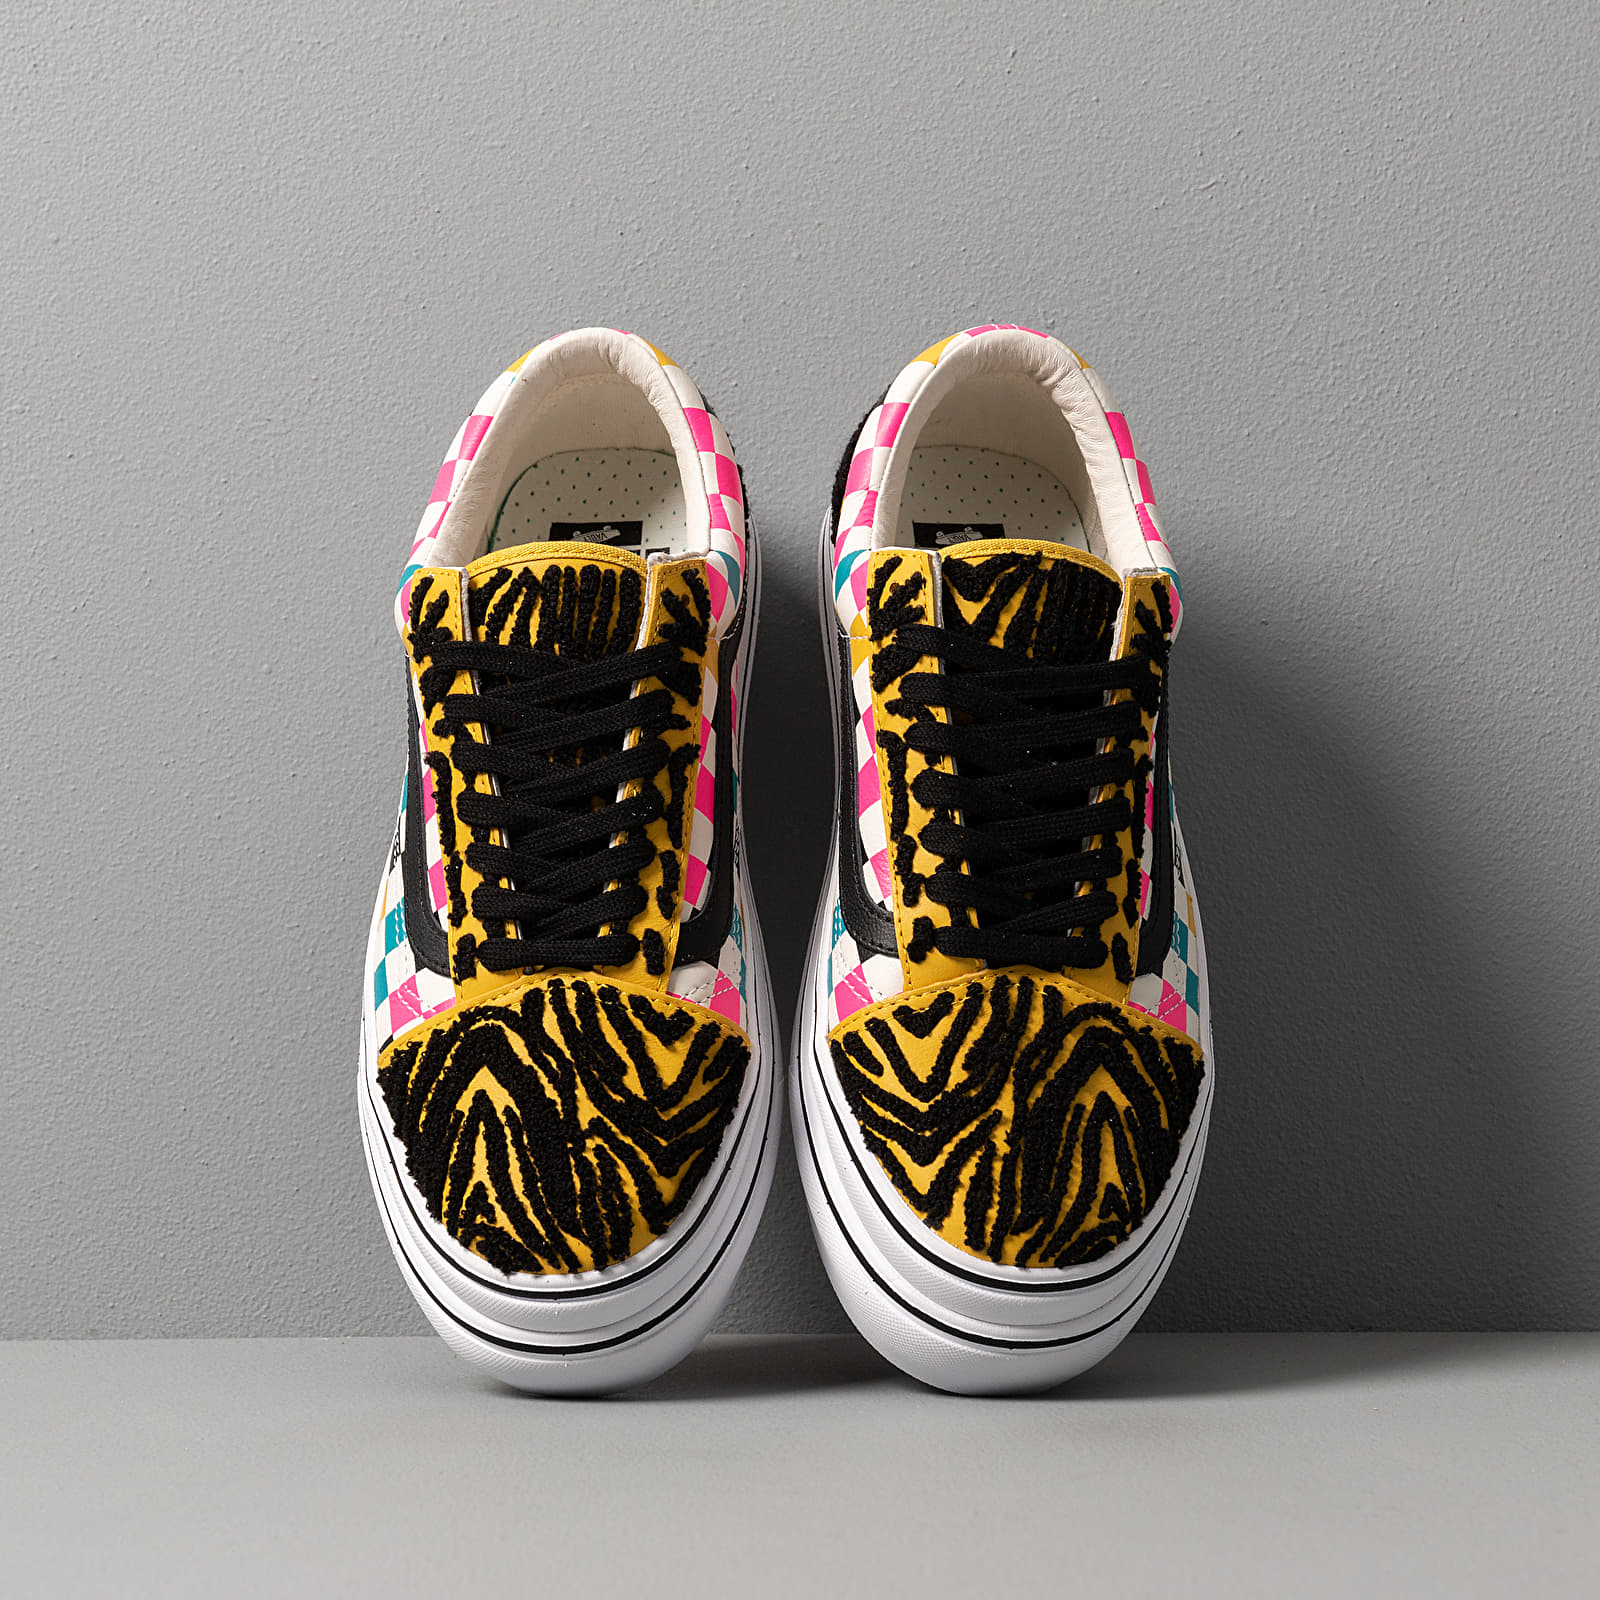 Vans Super ComfyCush Old Skool(Tiger Check) Multi